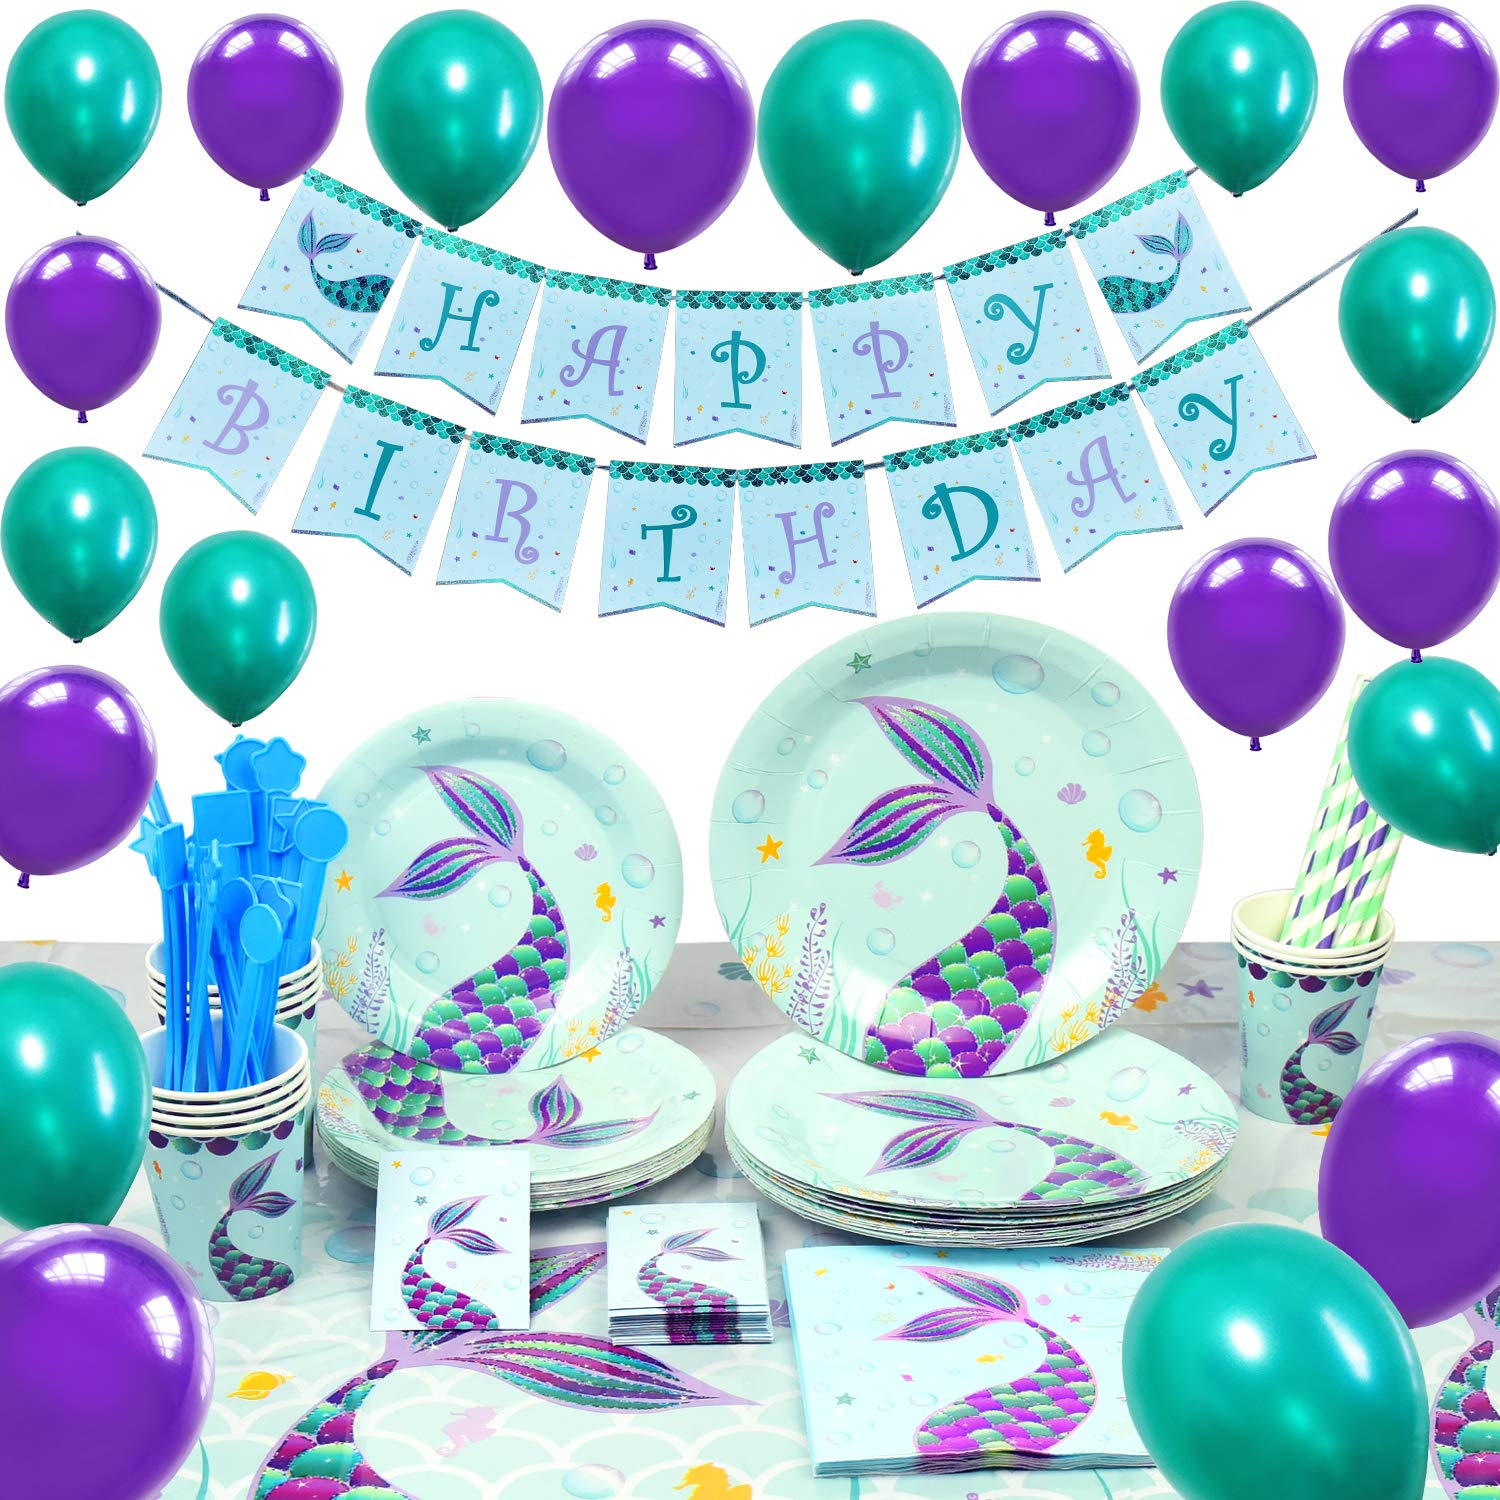 WERNNSAI Pool Mermaid Party Supplies Kit - Party Favors Girls Birthday Party Decoration Cutlery Bag Table Cover Plates Cups Napkins Straws Utensils Birthday Banner & Balloons Serves 16 Guests 169 PCS